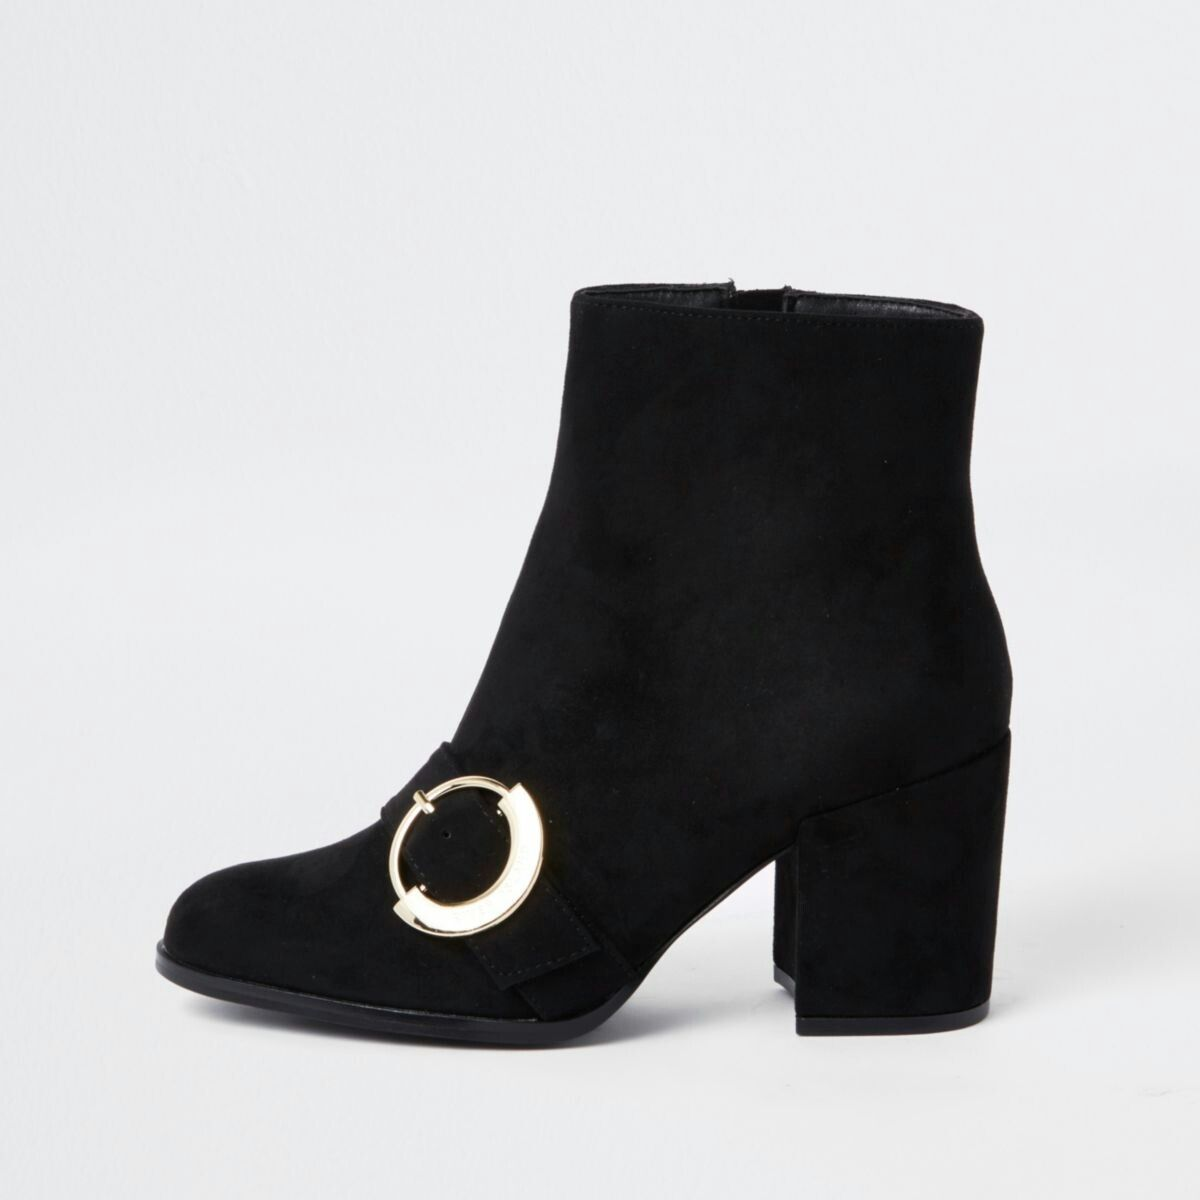 9fa5b3f6082 Black suede block heel sock boots | Ankle boots in 2019 | Boots ...